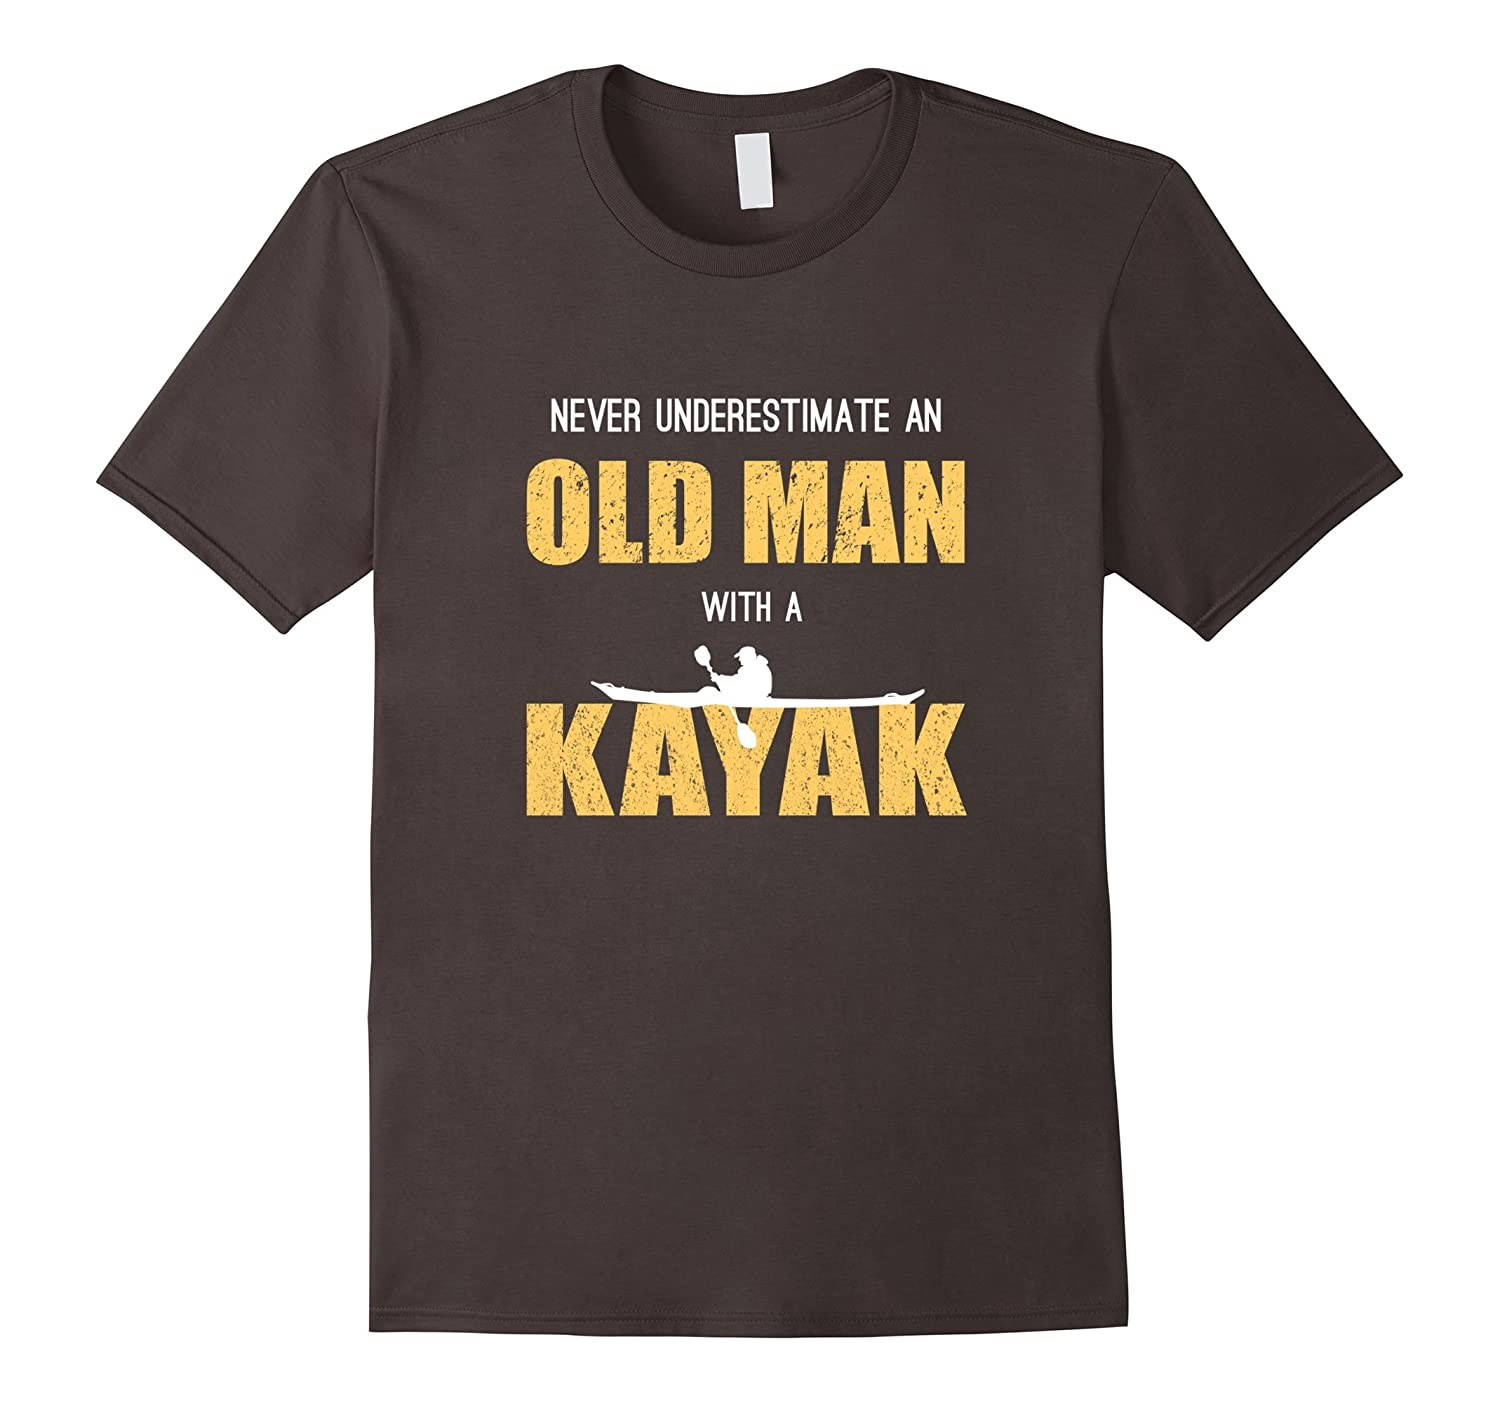 Never Underestimate An Old Man With a Kayak – Funny T-Shirt